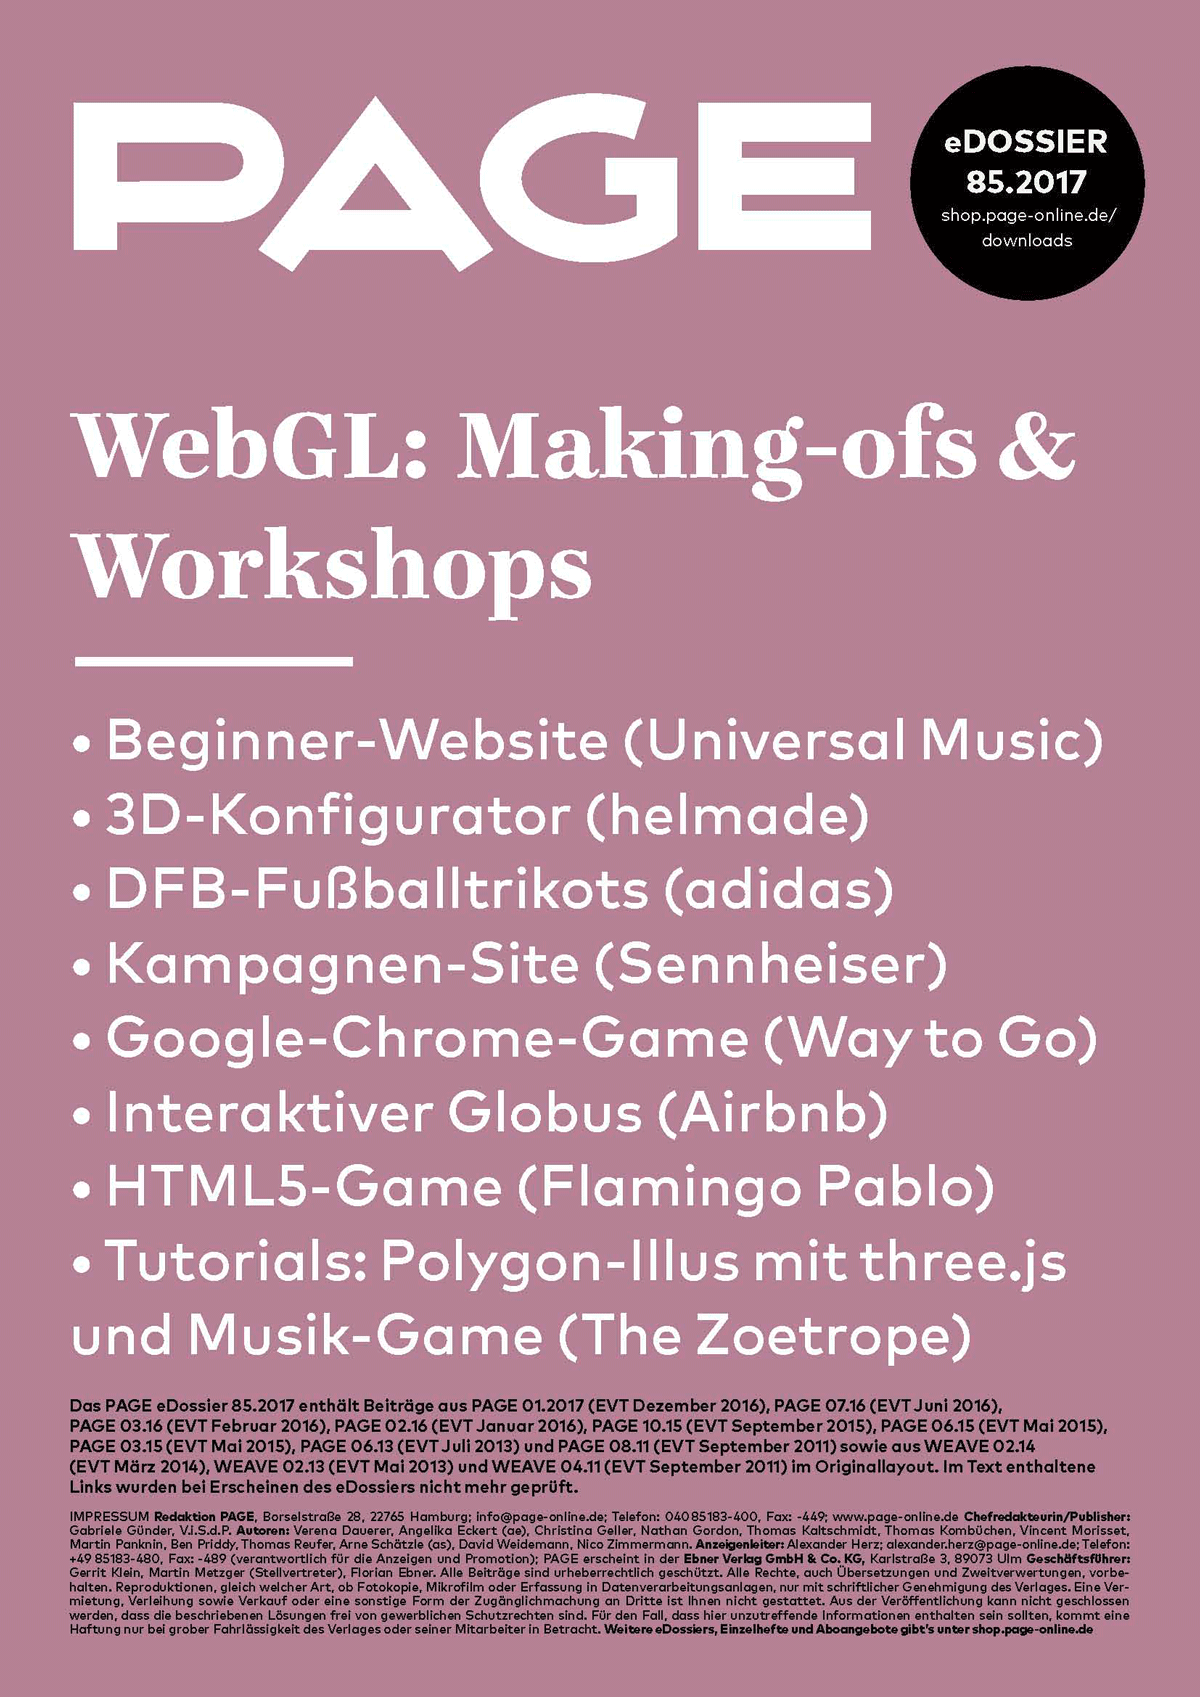 WebGL, Design, Development, three.js, JavaScript, HTML5, web 3d, graphics library